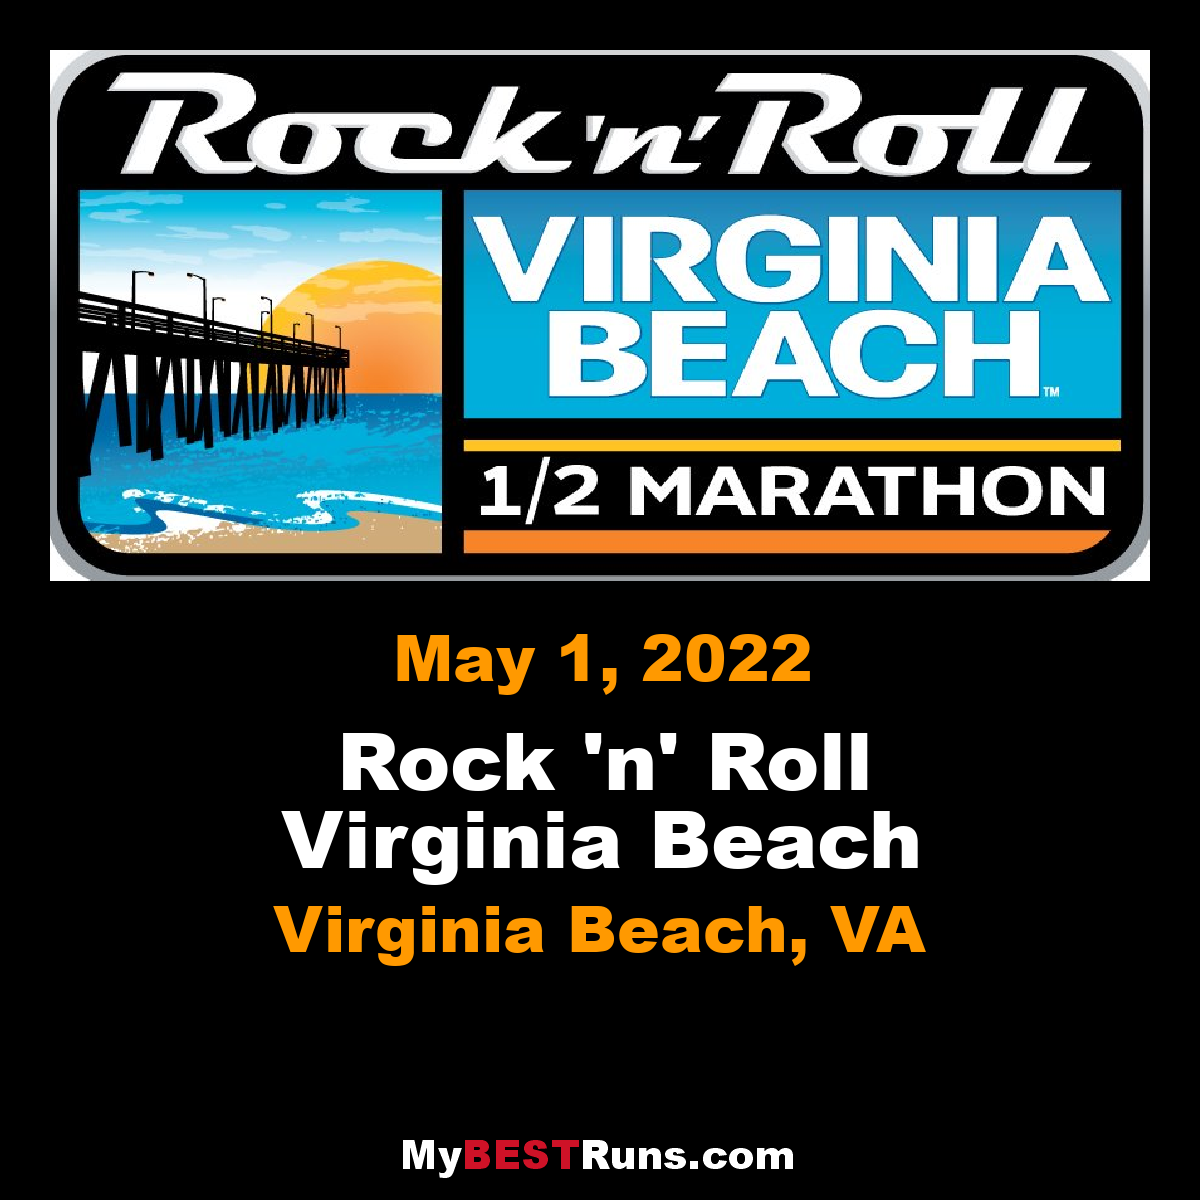 Rock 'n' Roll Virginia Beach